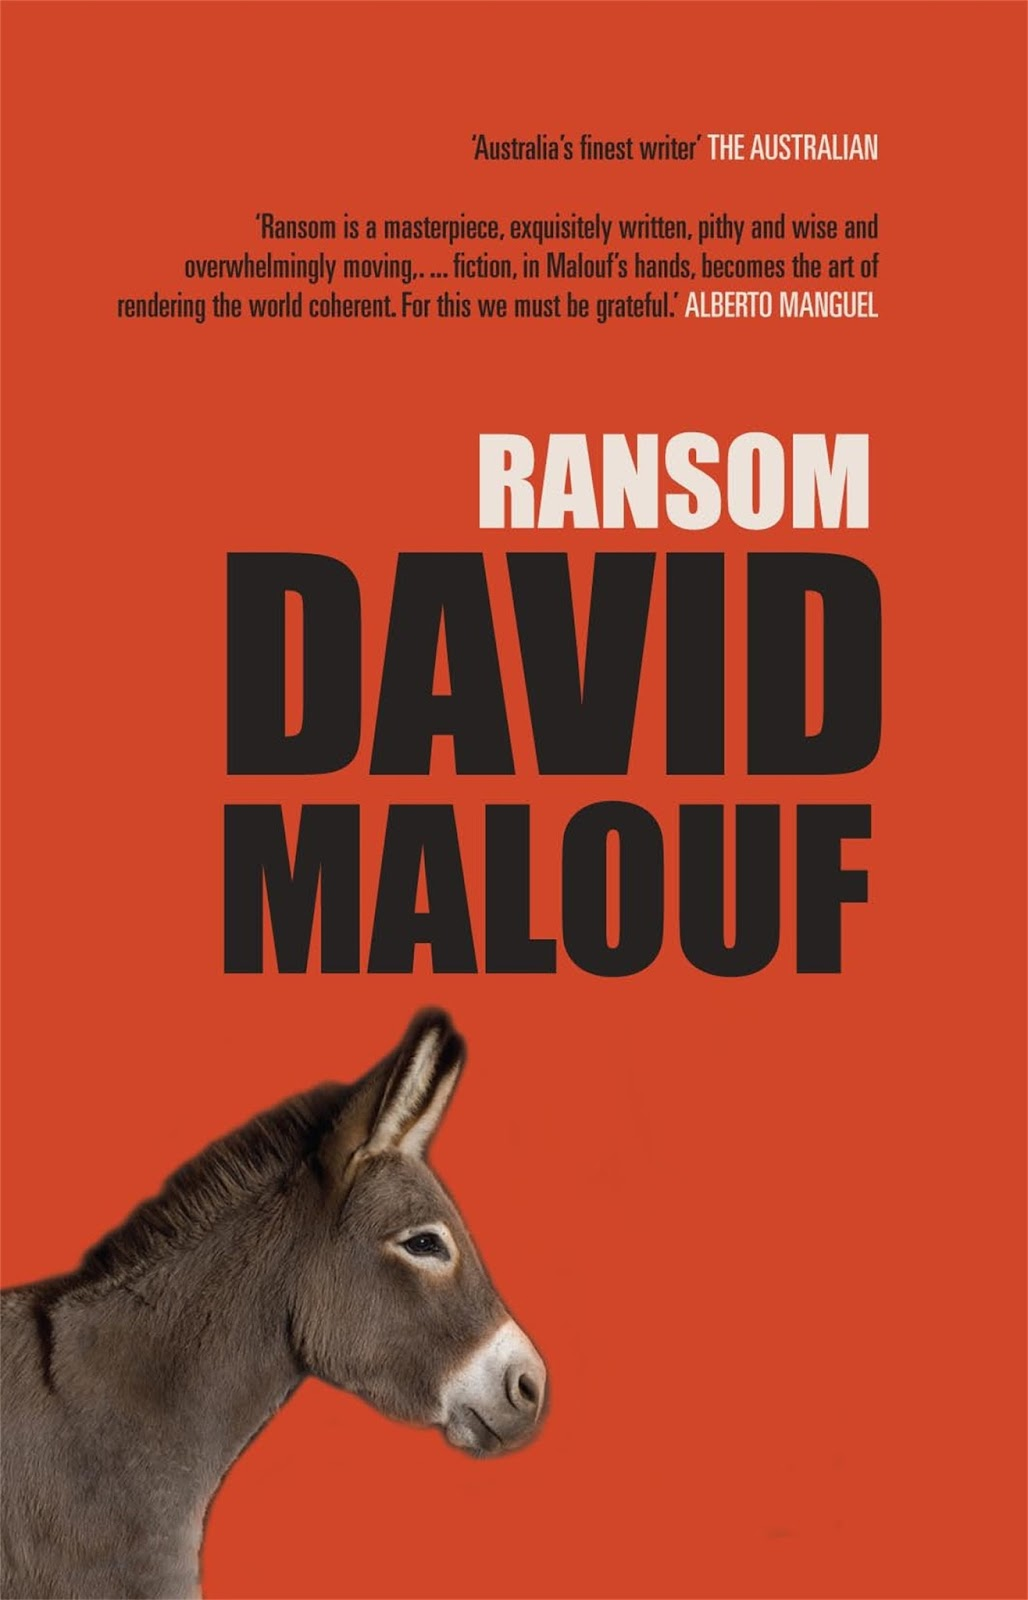 ransom by david malouf class notes Insight text guide yvonne smith ransom david malouf c o n t e n t s character map iv overview 1 about the author 1 reading malouf s work: sound and meaning 2 synopsis 3 character summaries 4 background.